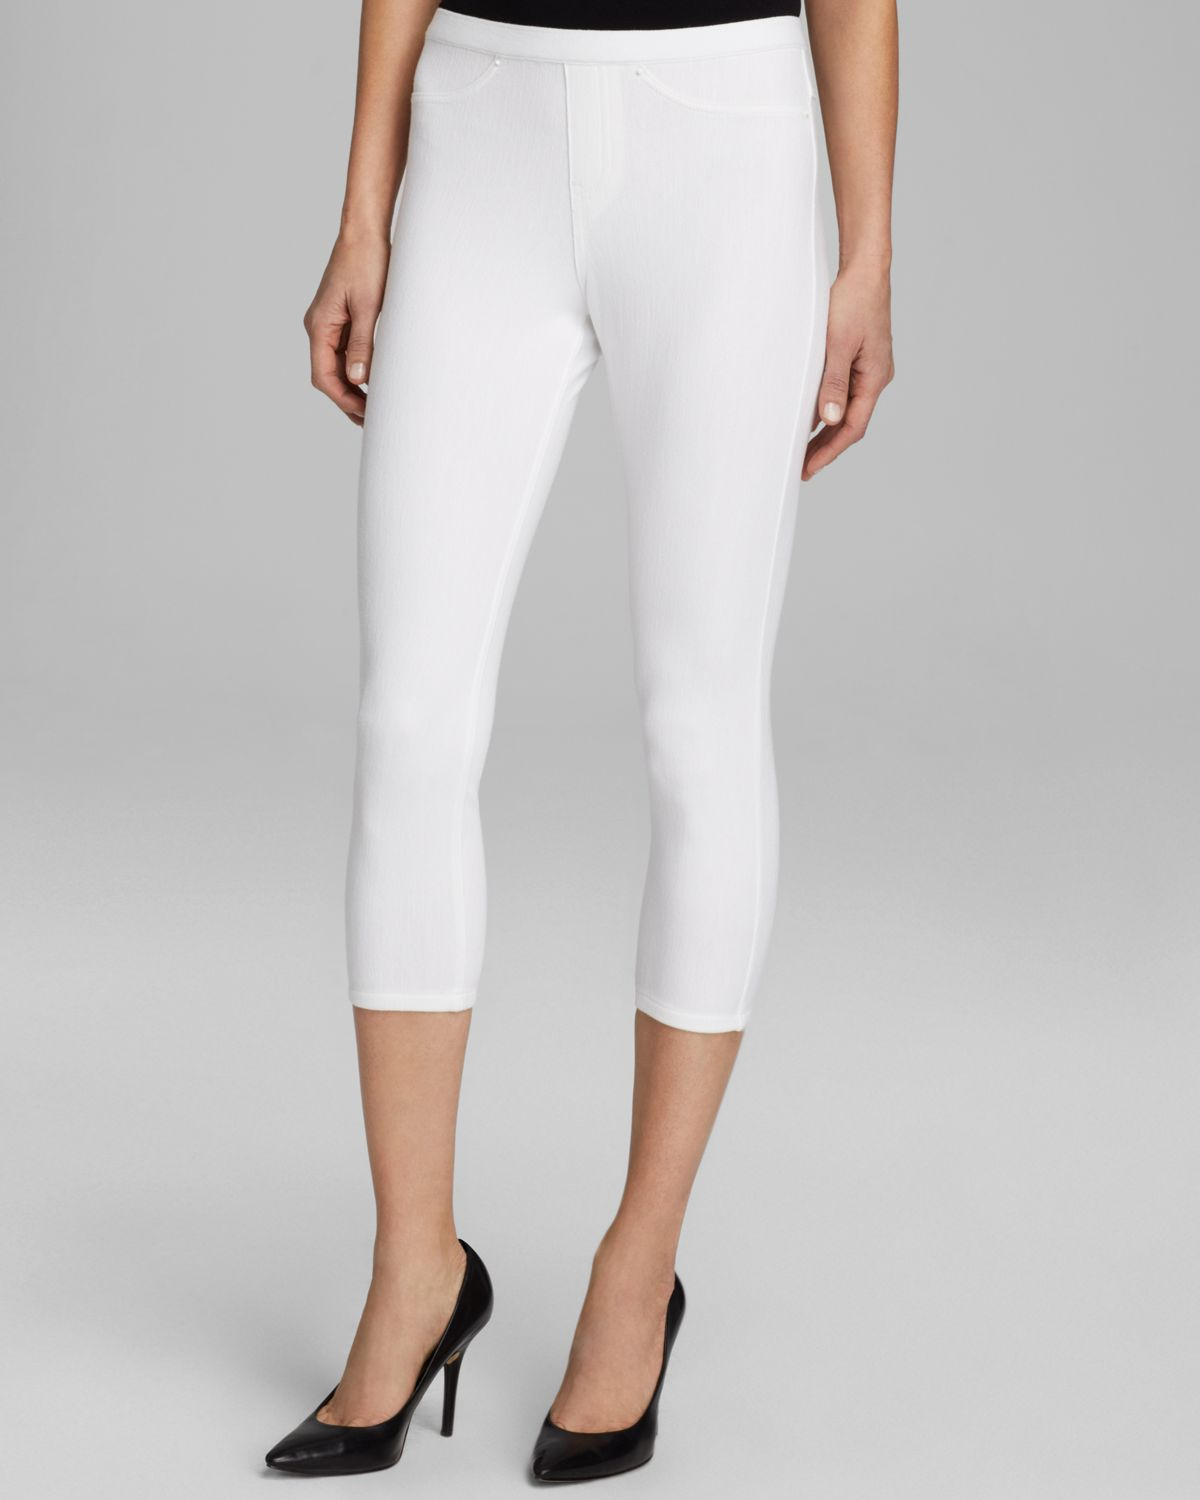 Find great deals on eBay for white legging jeans. Shop with confidence.